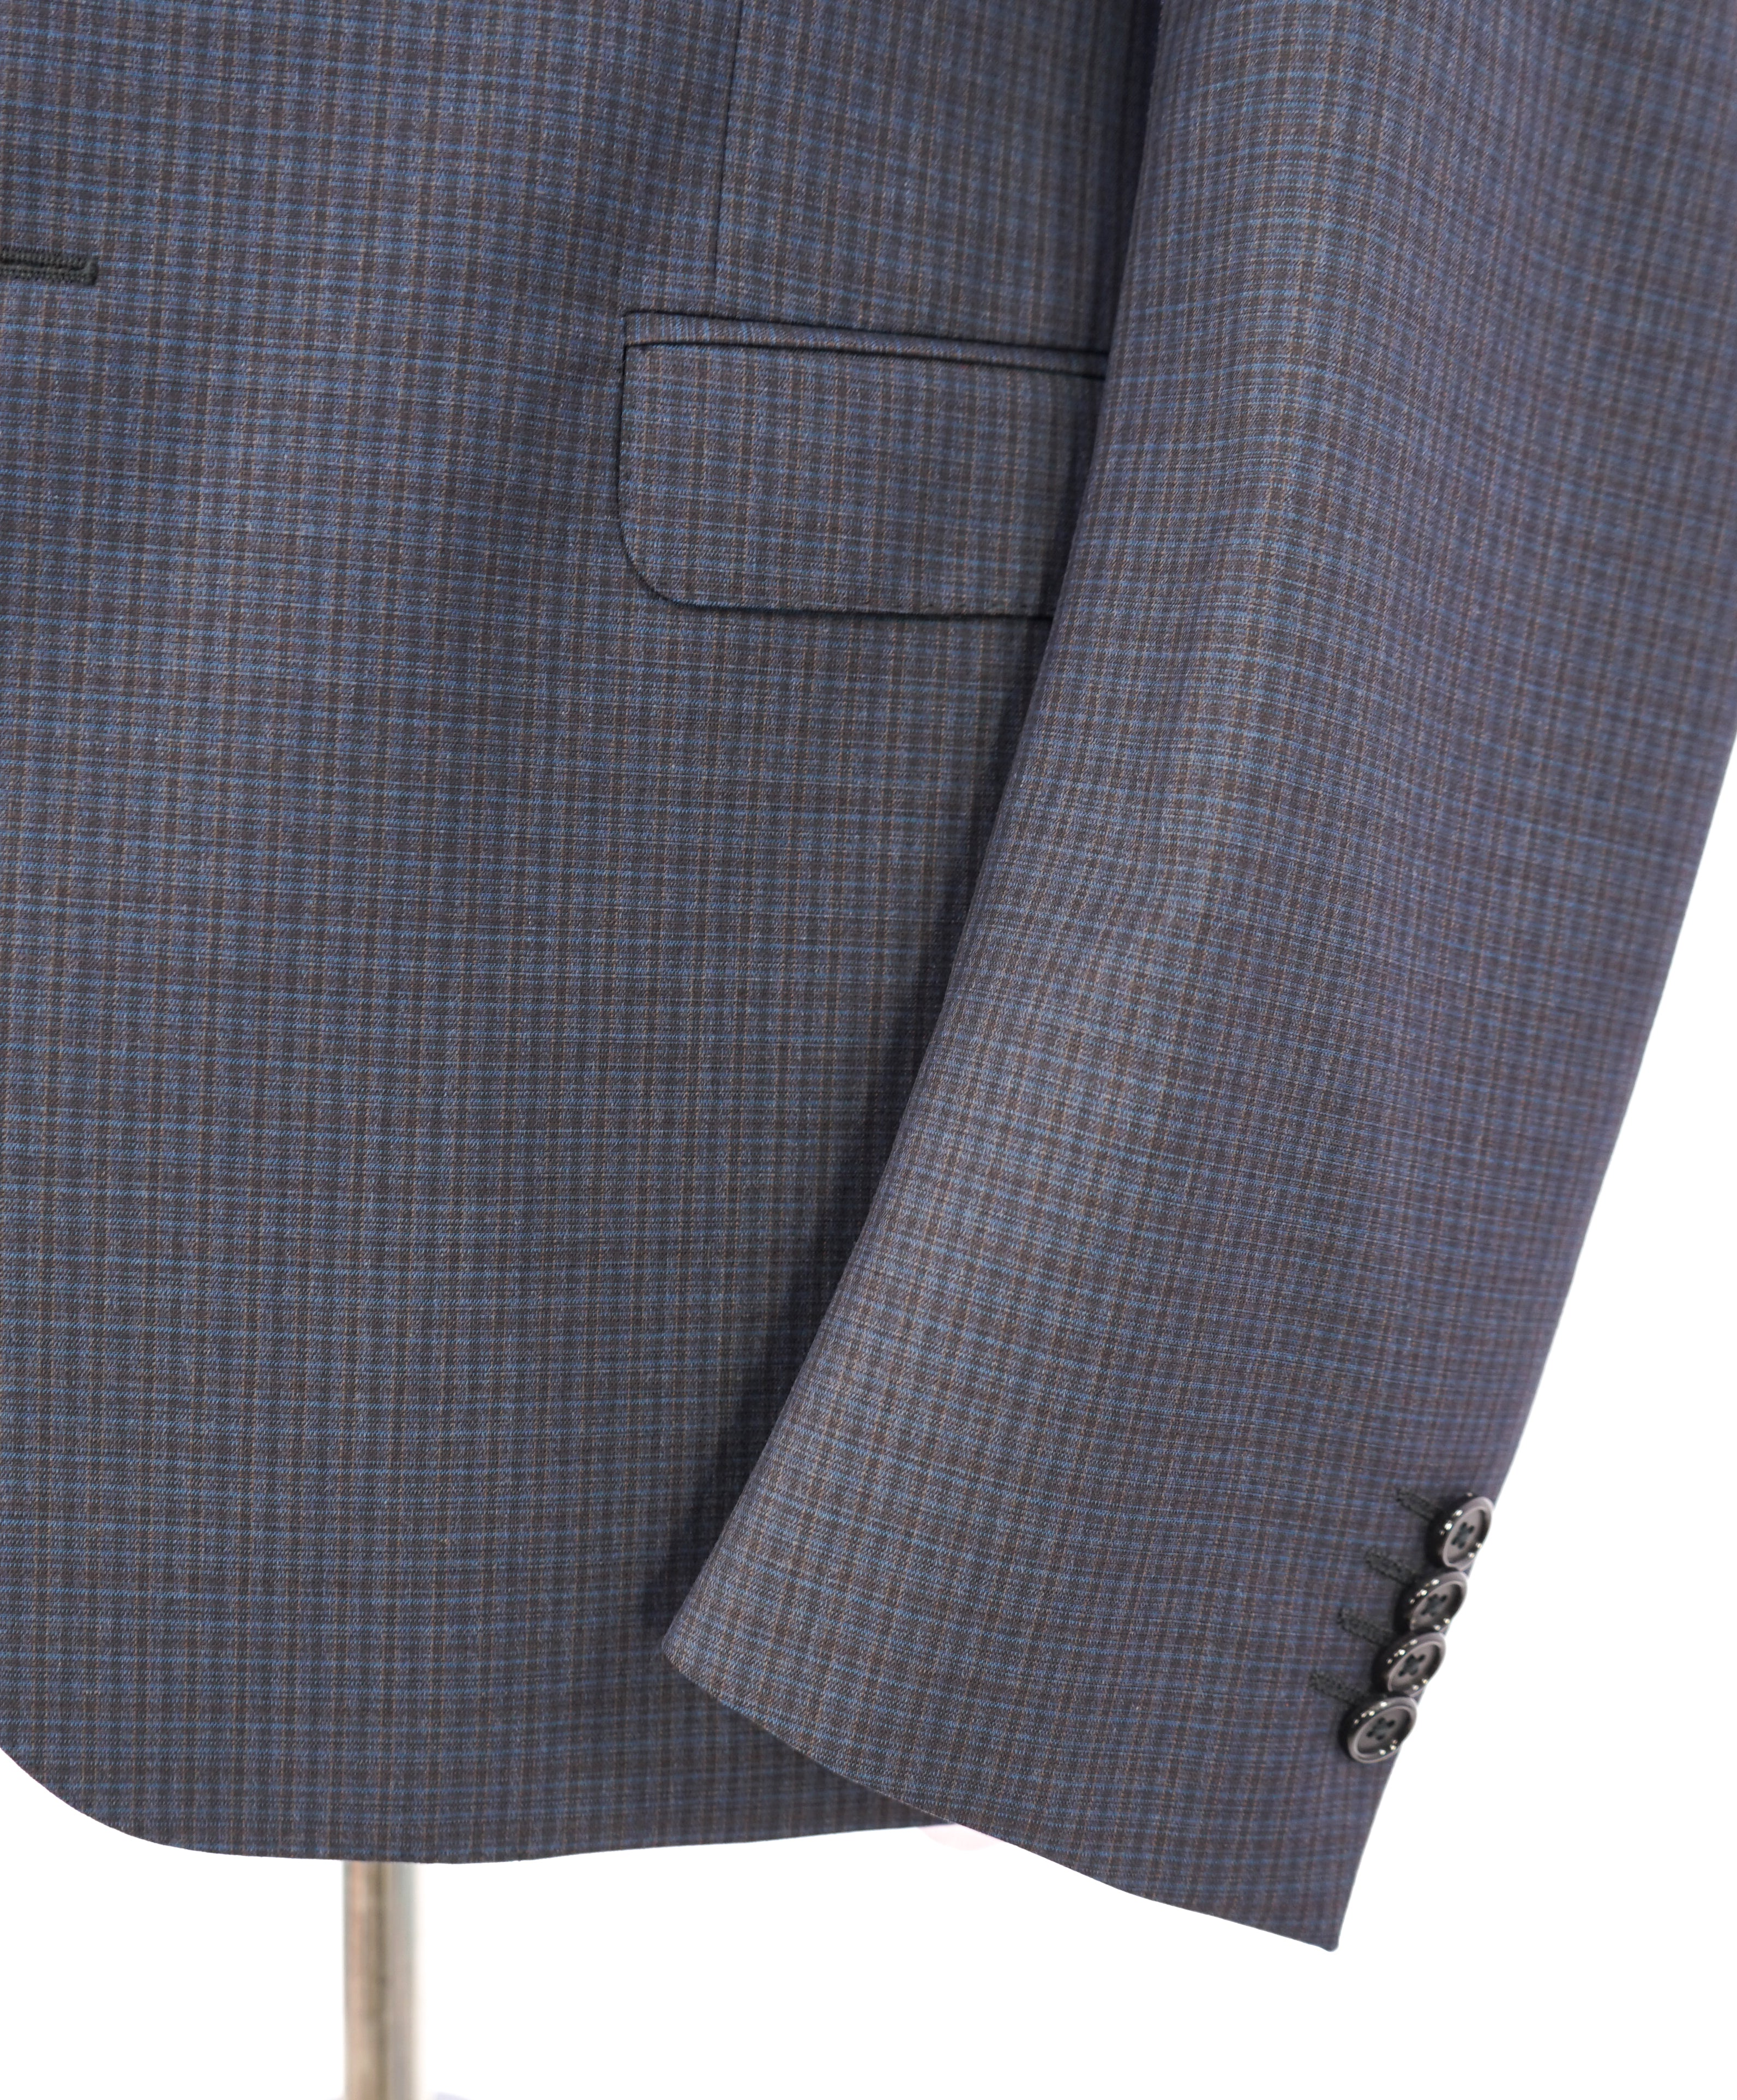 Z ZEGNA - Blue/Gray Multicolor Abstract Check Drop 8 Wool Suit - 40S